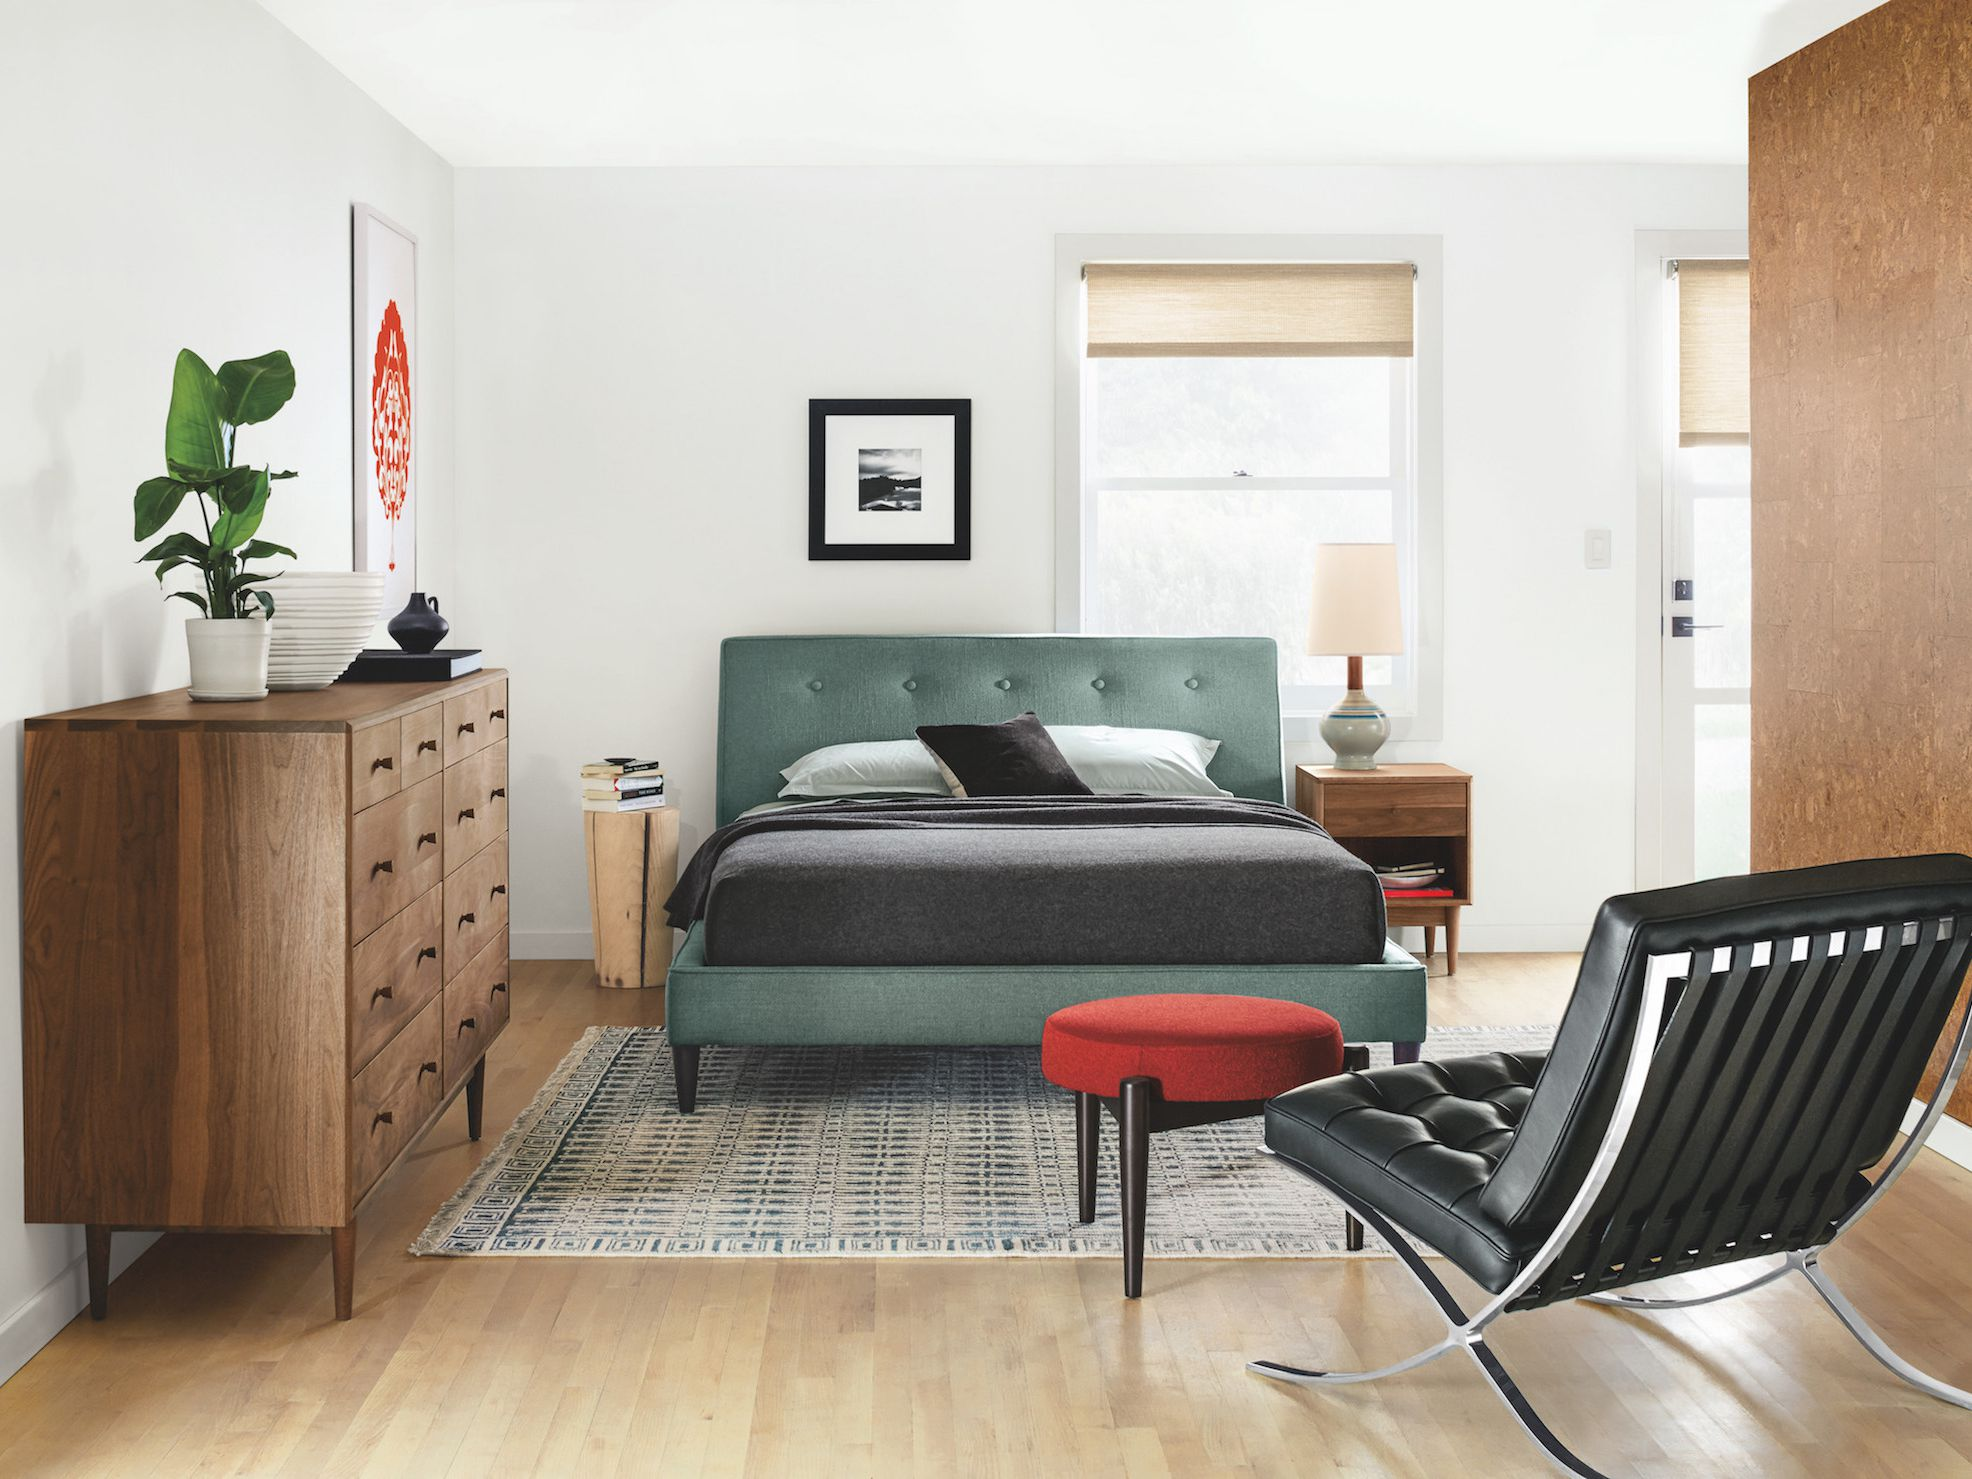 Furniture Sold at Room and Board Stores: A Review